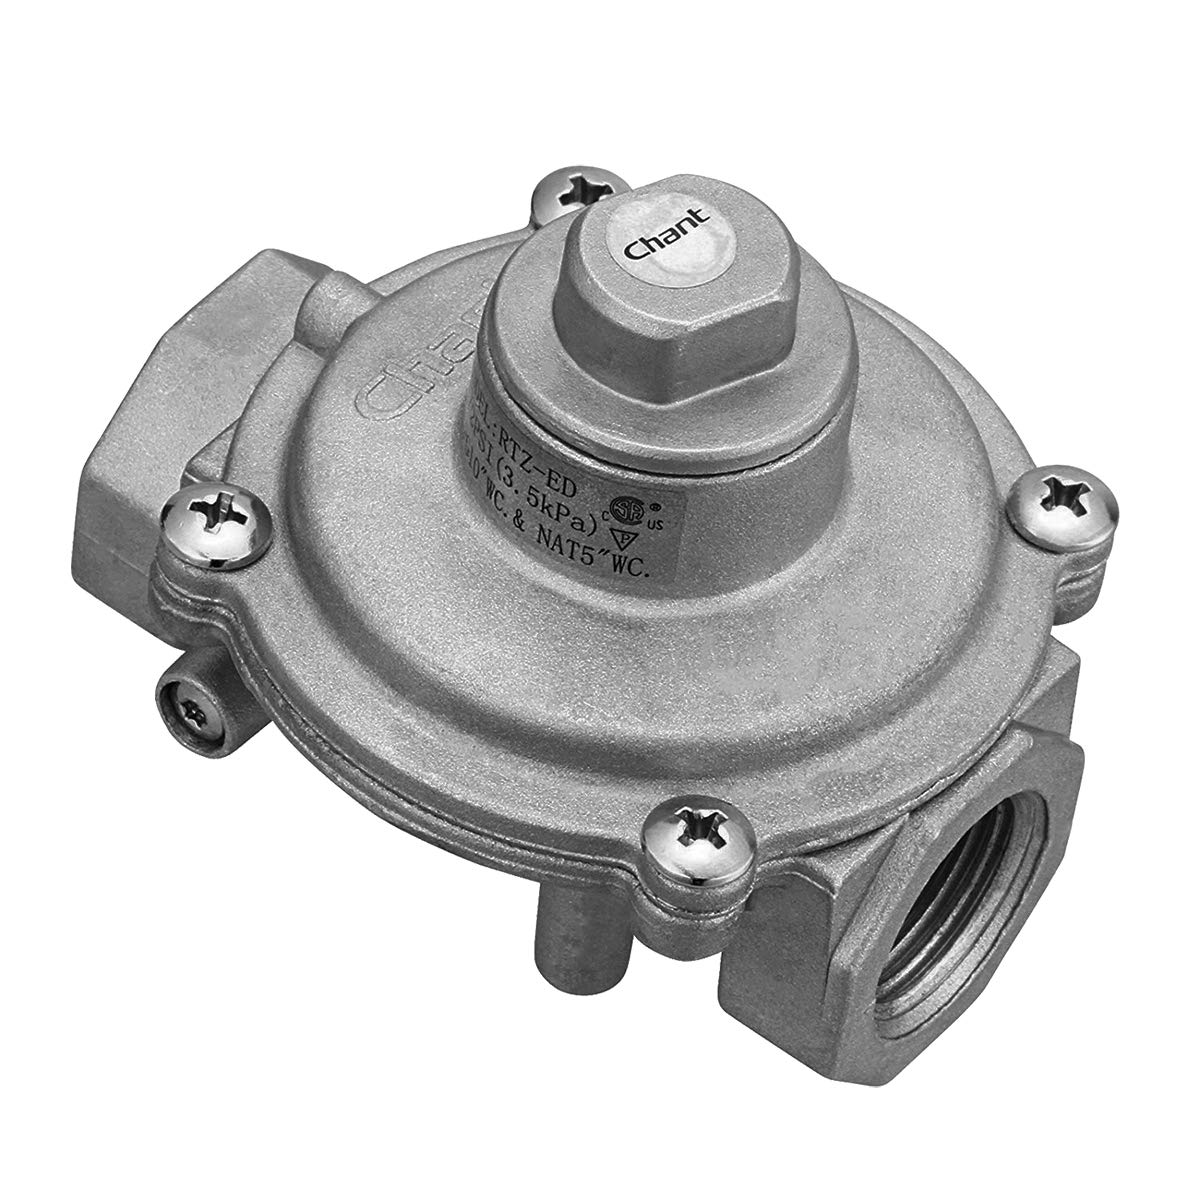 "Gas Pressure Regulator, Gasland chef GS-ED1 5/8"" FPT In/Out Gas Pipe, 1/2 PSI(3.5 kPa) Gas Inlet LPG10""WC. & NAT5""WC. Gas Pressure Regulator for Liquefied Propane and Natural Gas, Easy To Install"